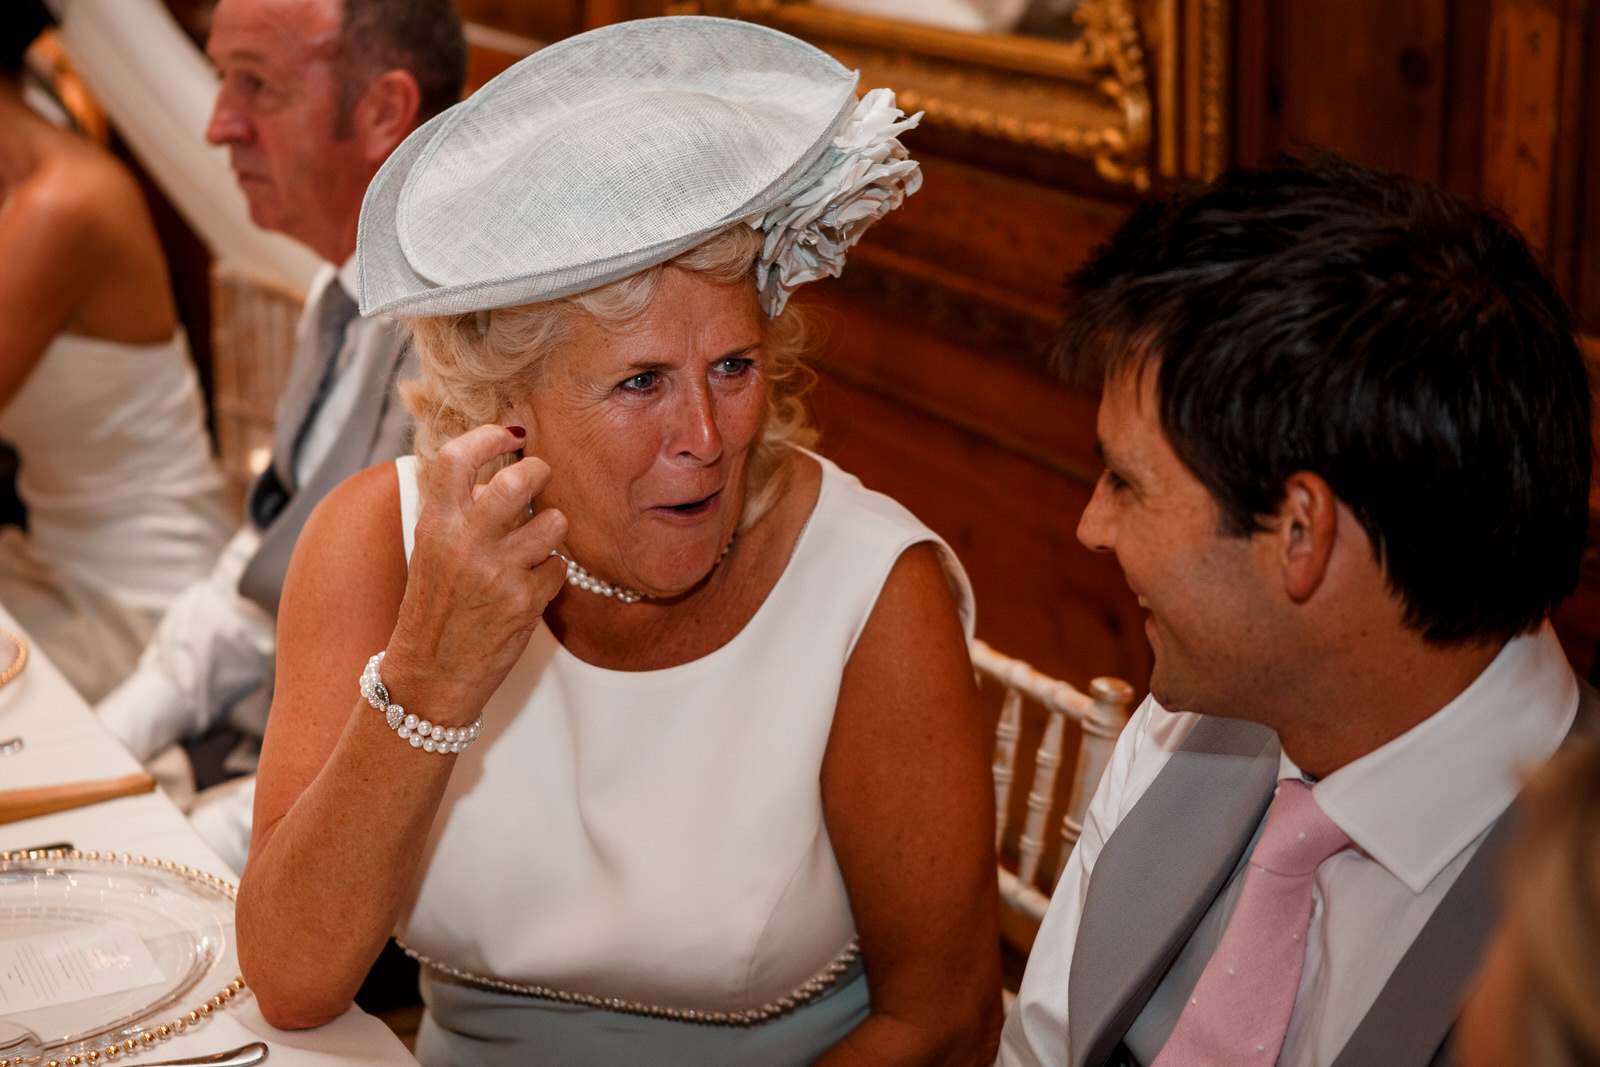 mum looking shocked at best man